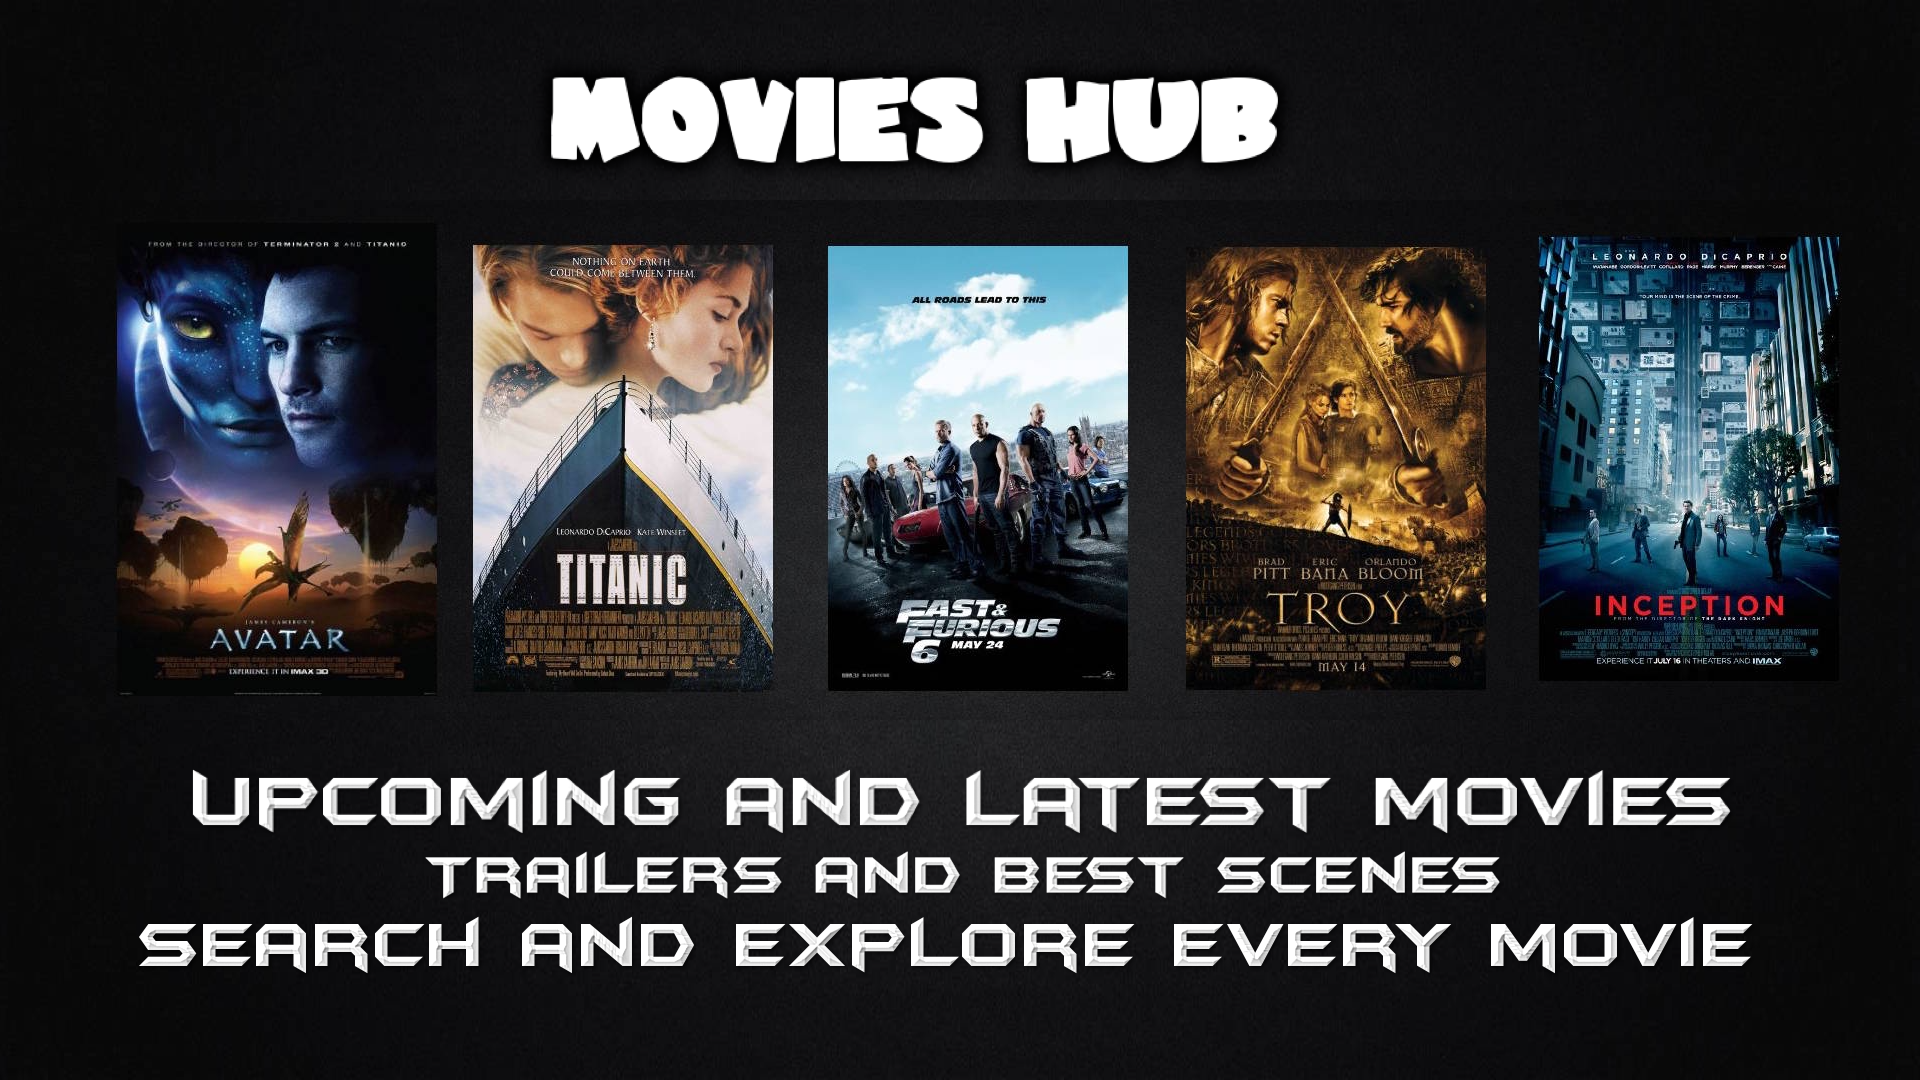 Movies Hub - Latest, Upcoming and Search Any Movie screenshot 8